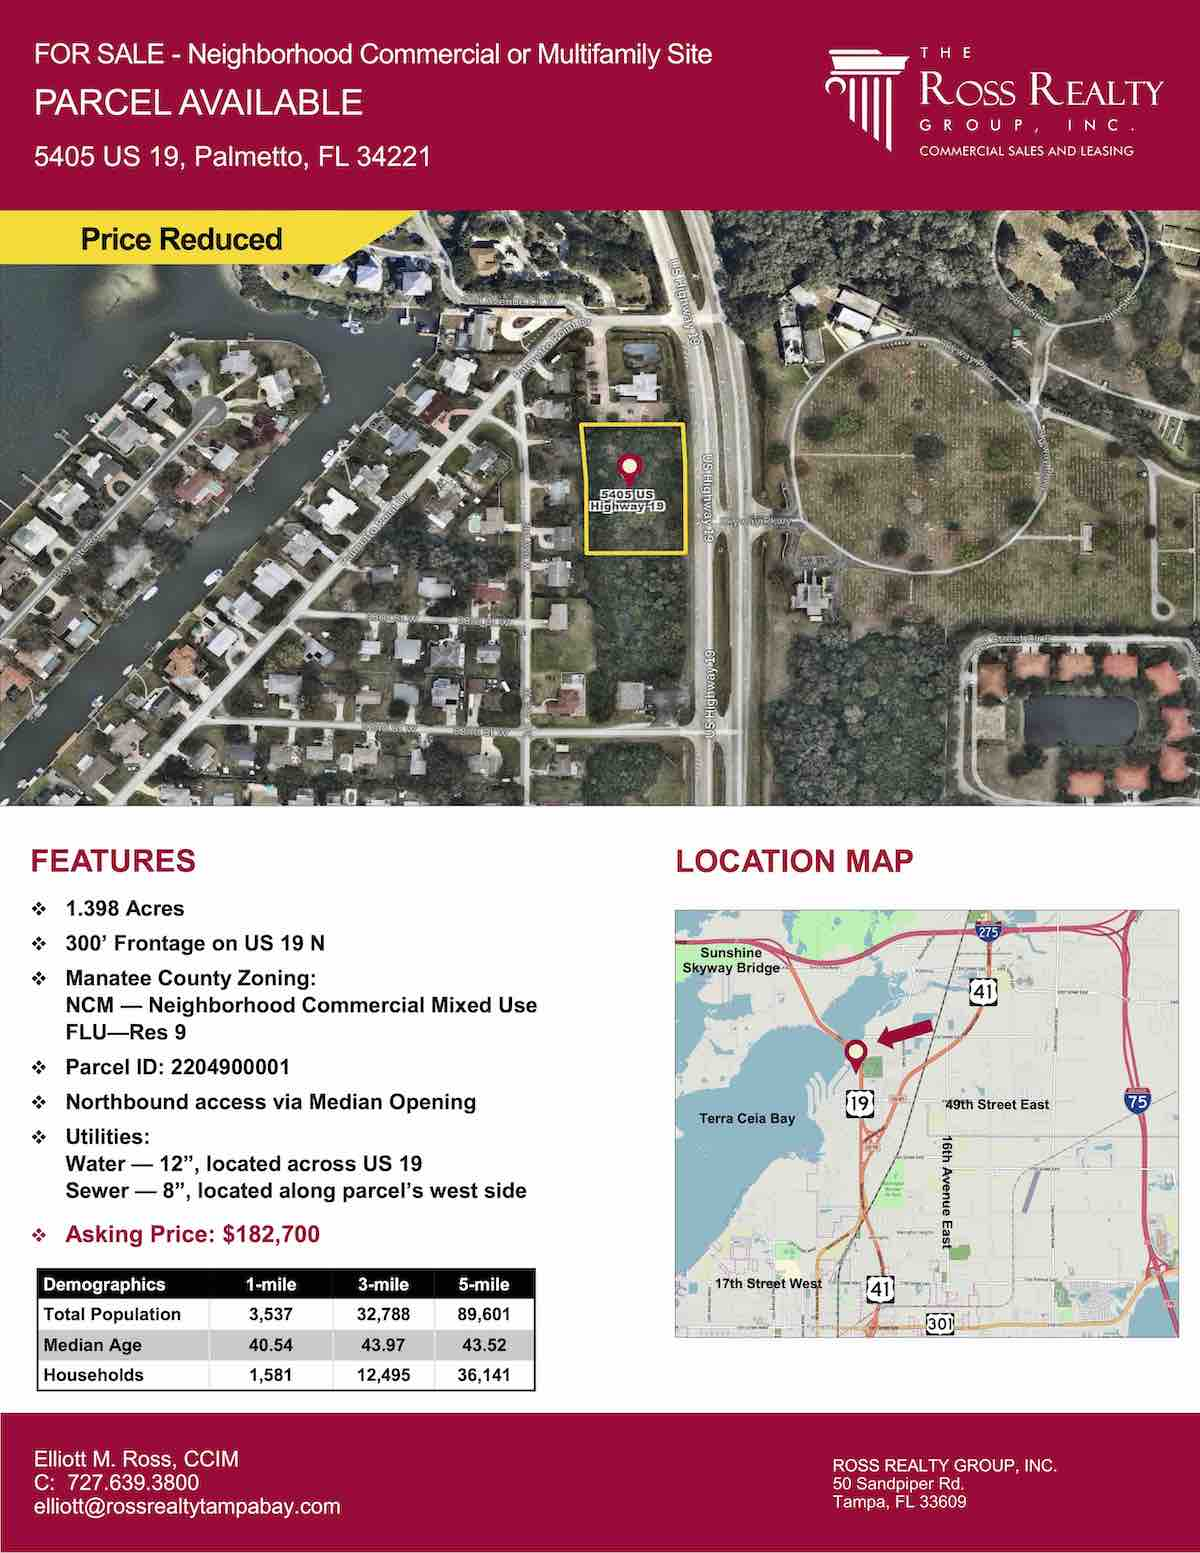 Tampa Commercial Real Estate - FOR SALE - Neighborhood Commercial or Multifamily Site - Parcel Available - 5405 US 19, Palmetto, FL 34221 P1